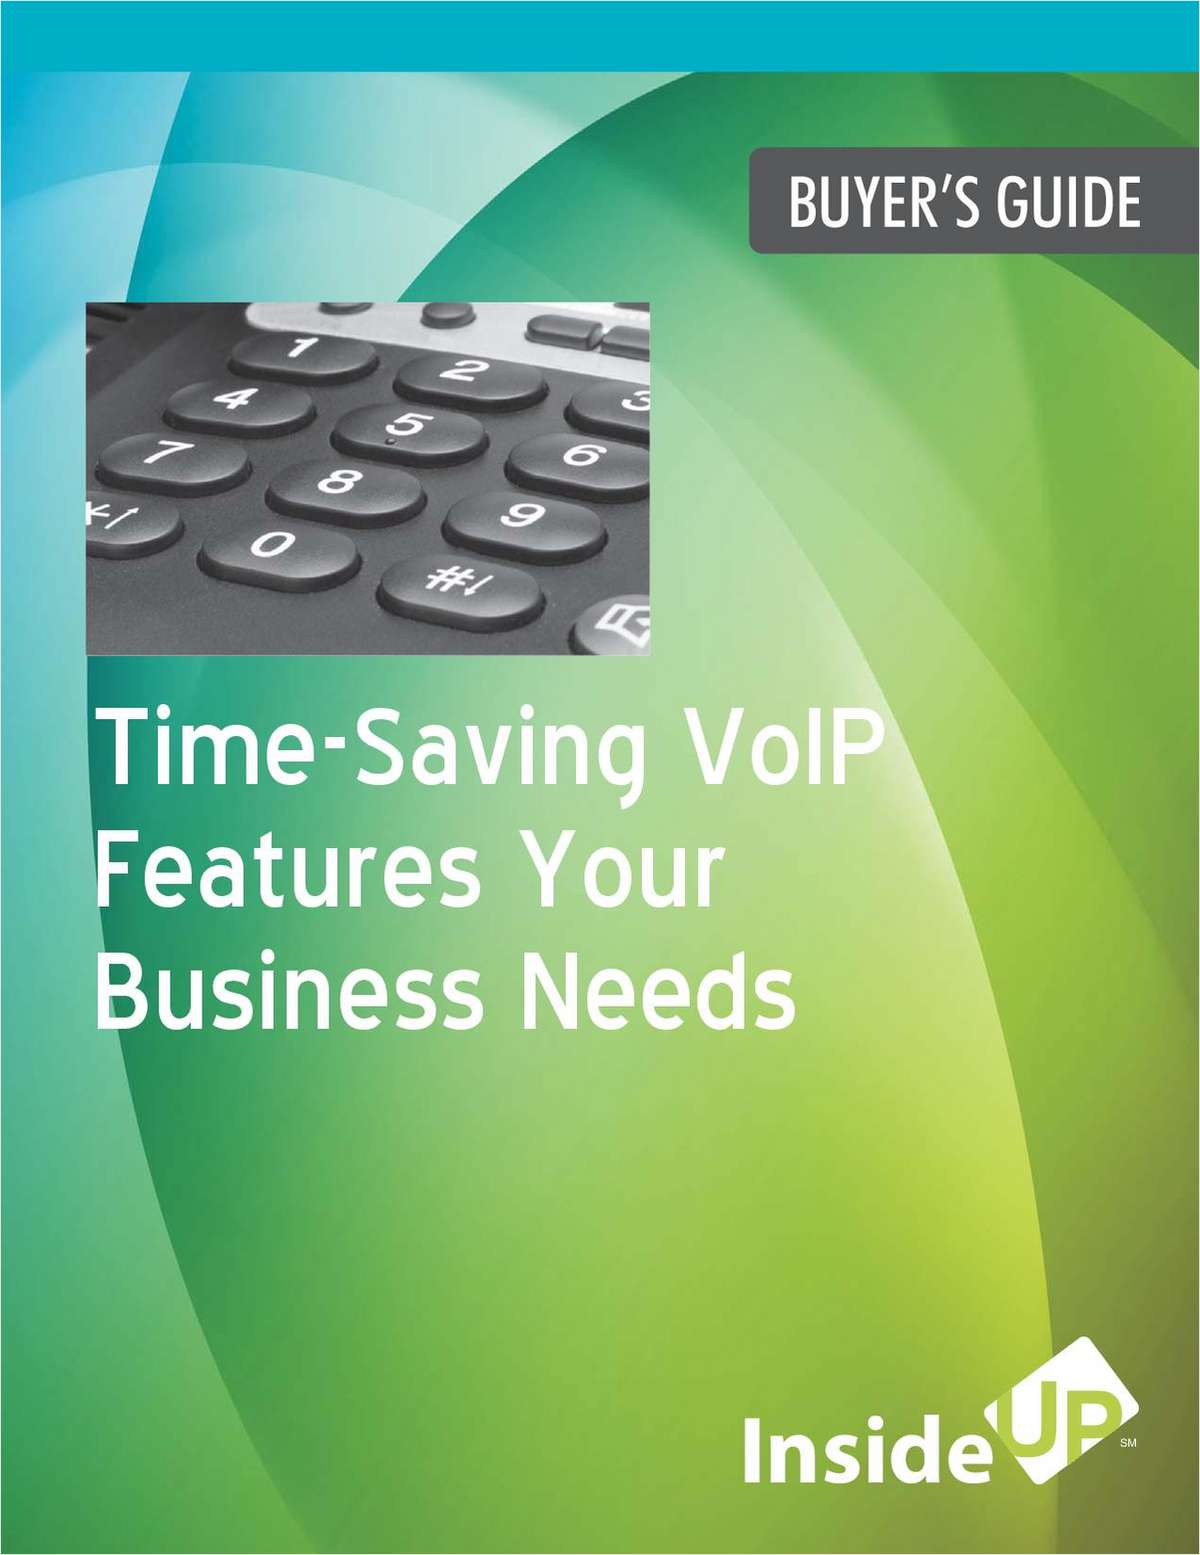 Time-Saving VoIP Features Your Business Needs